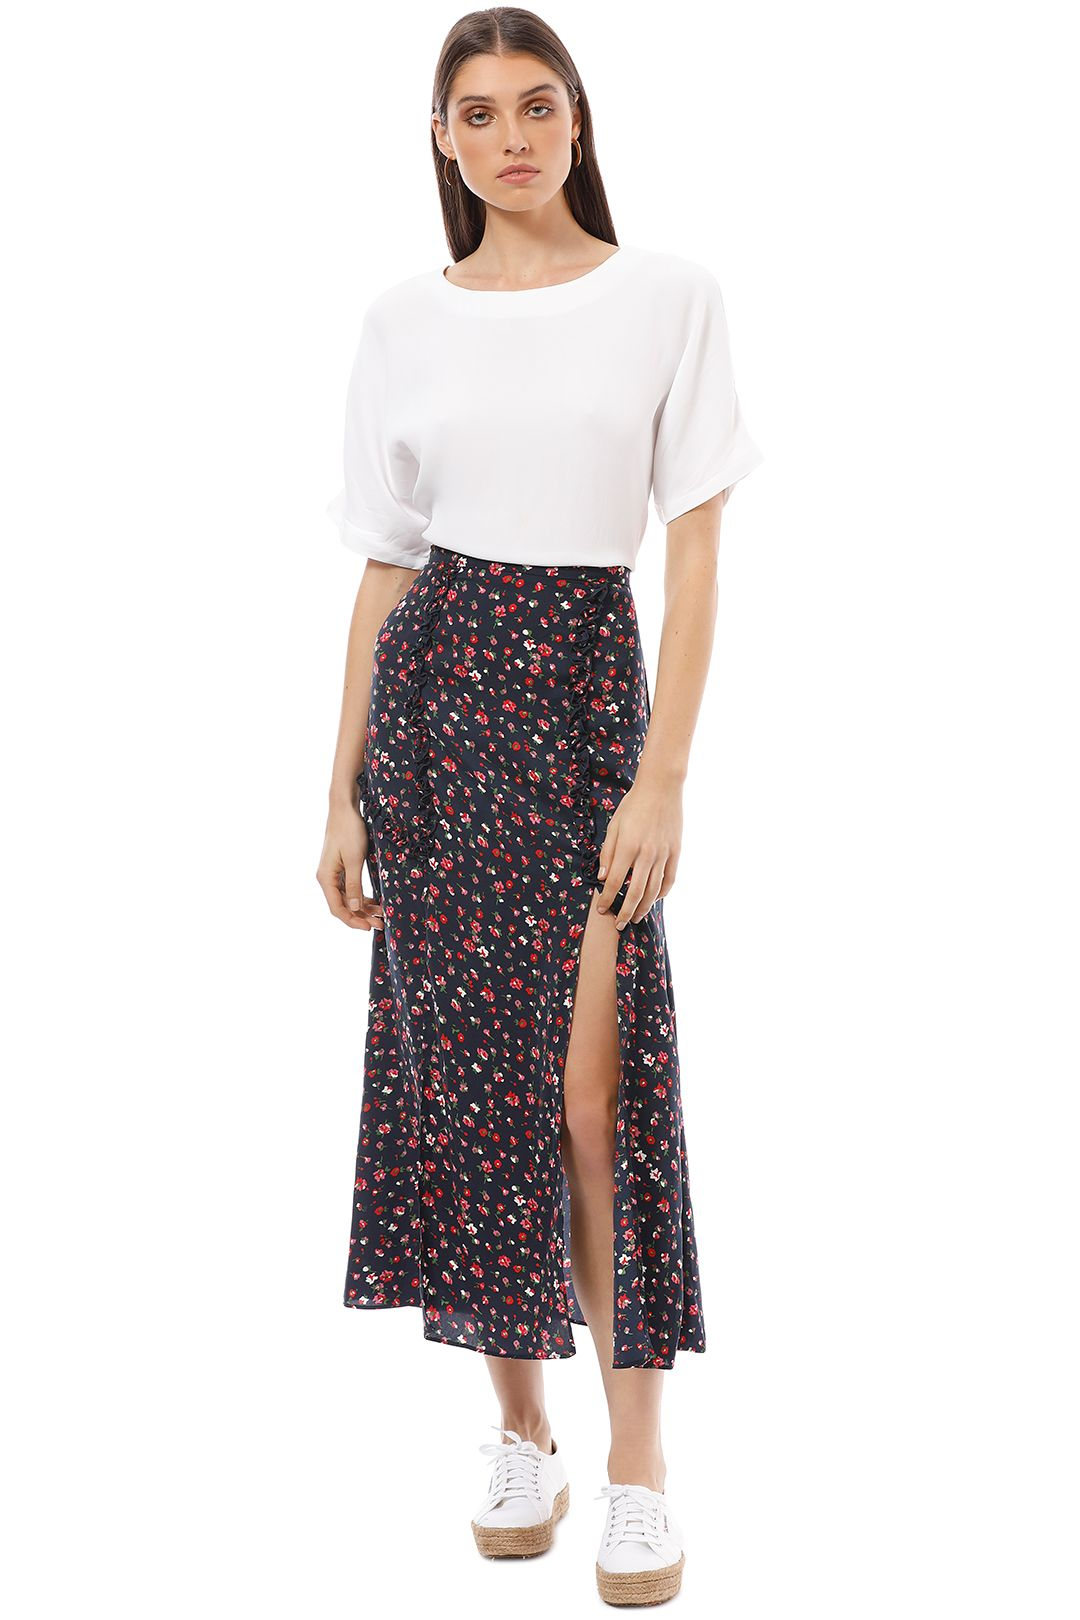 The Fifth - Sonic Skirt - Floral - Front